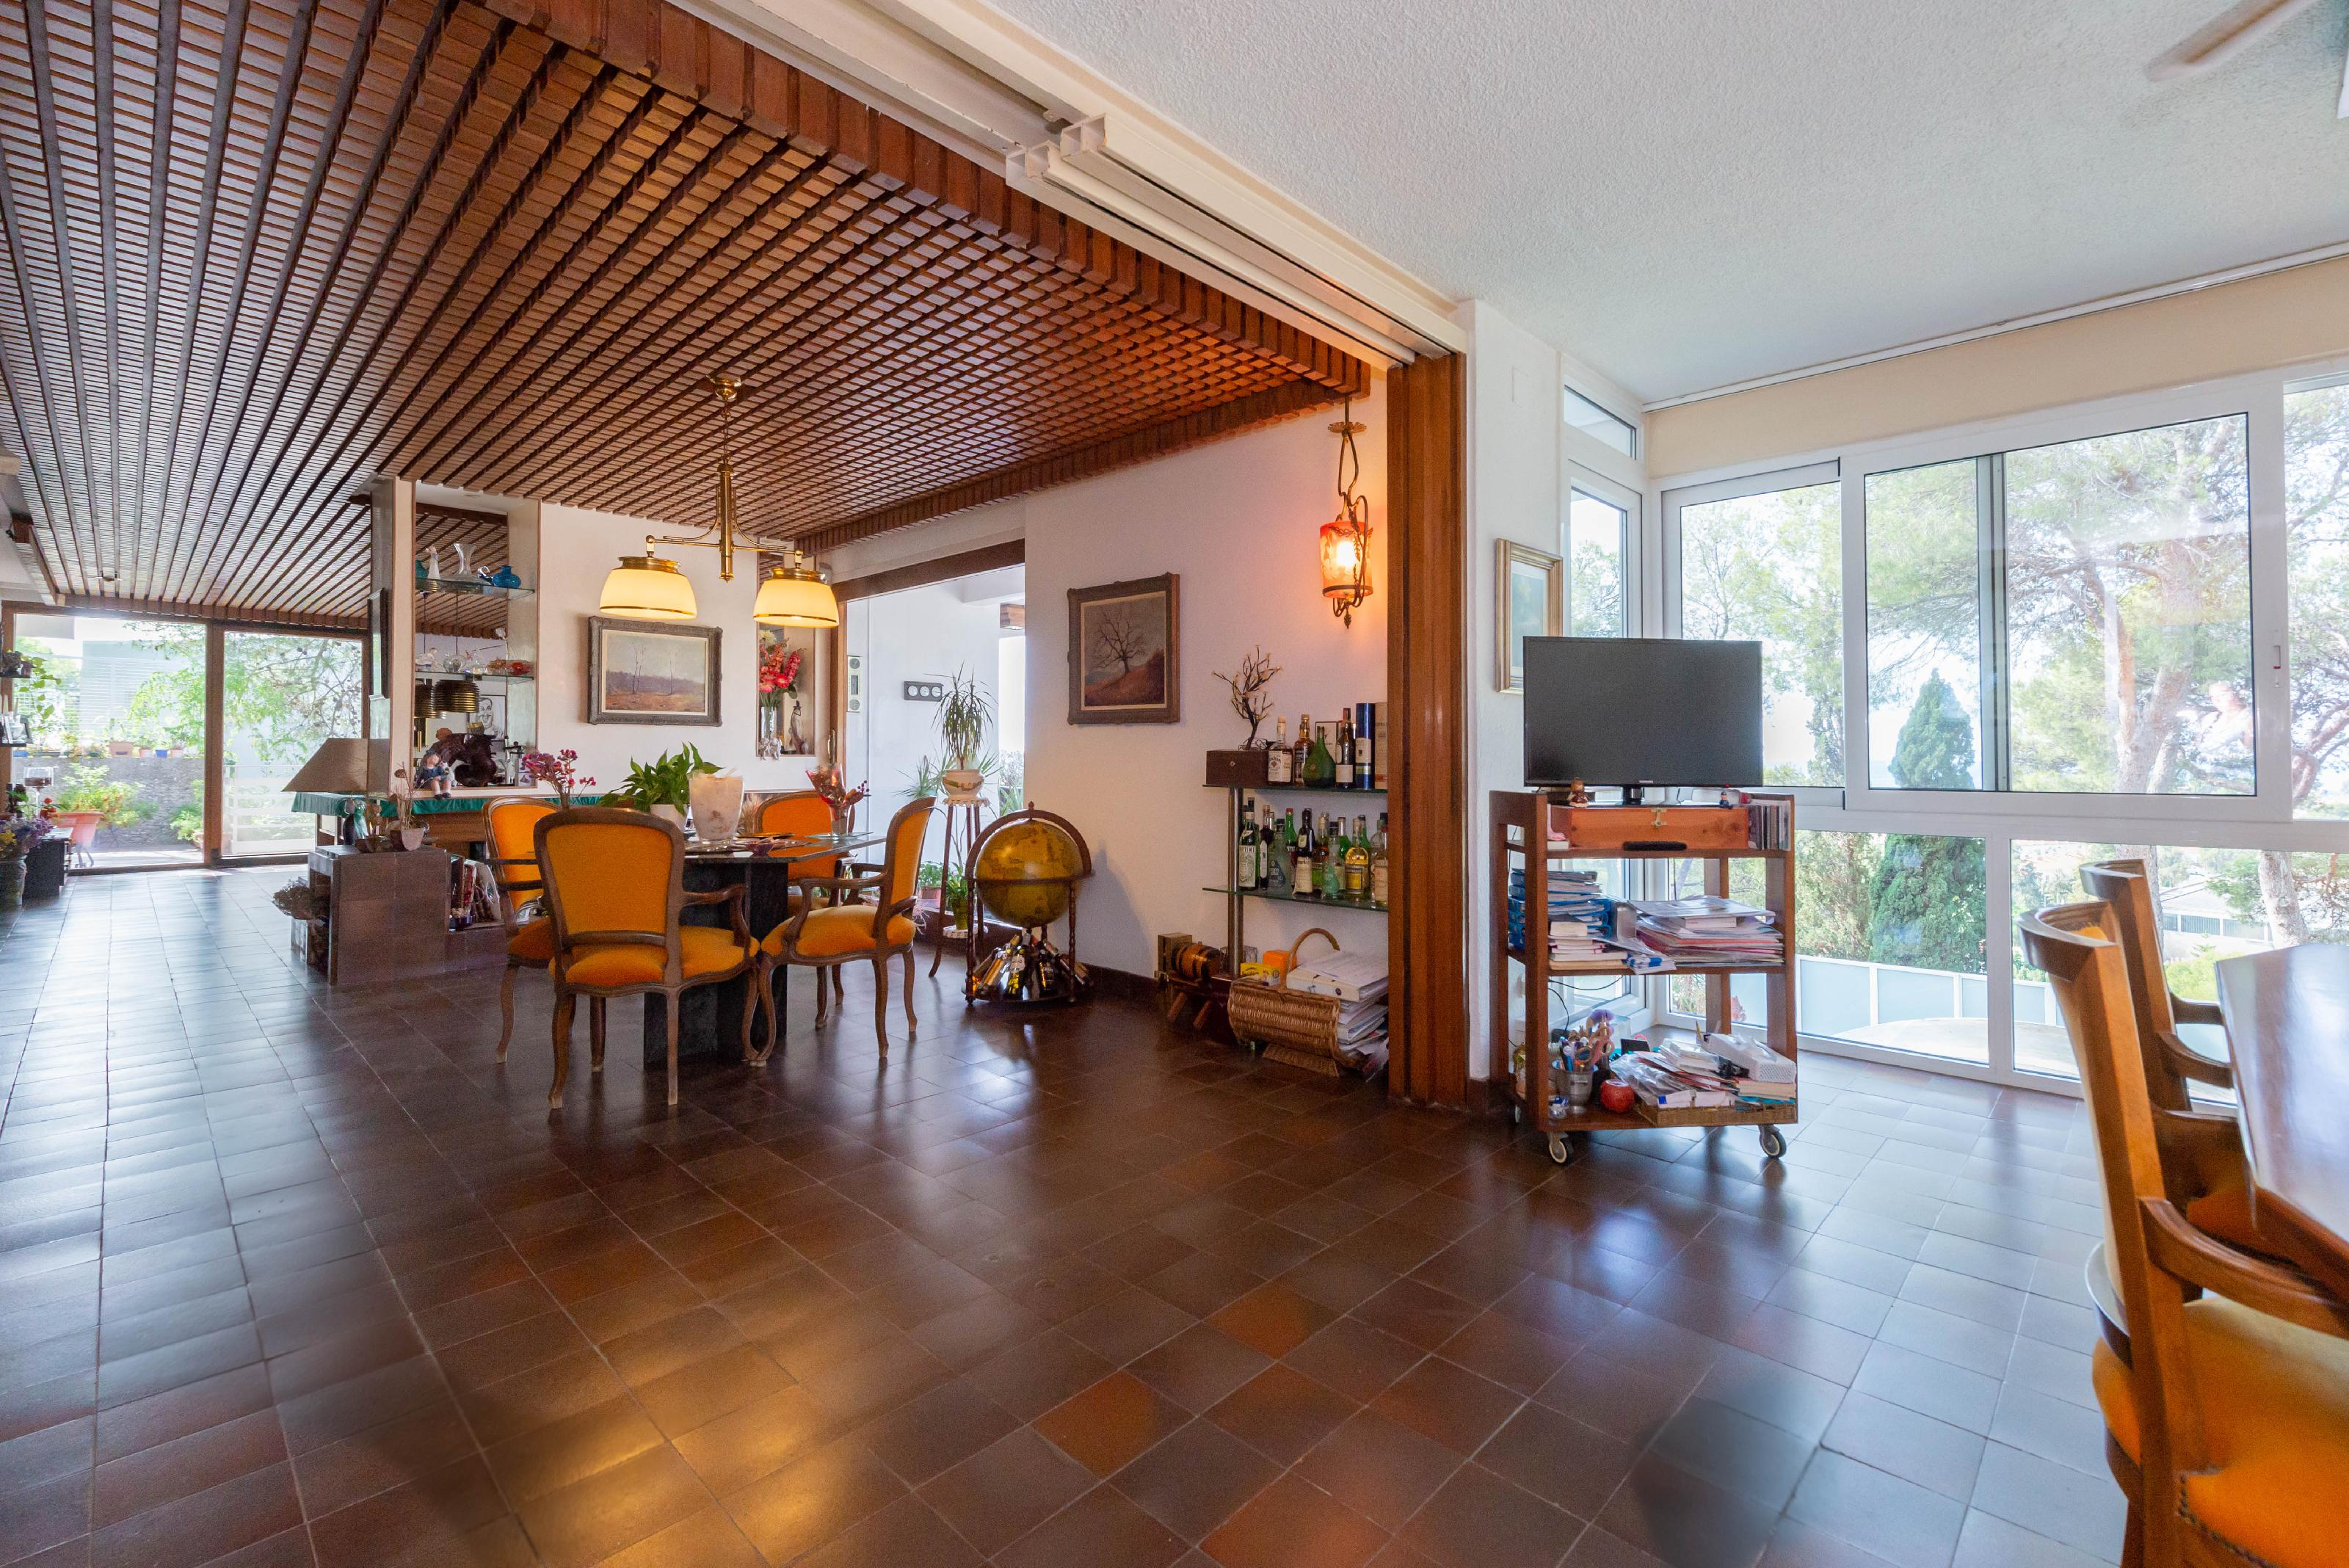 253501 Detached House for sale in Bellamar 2